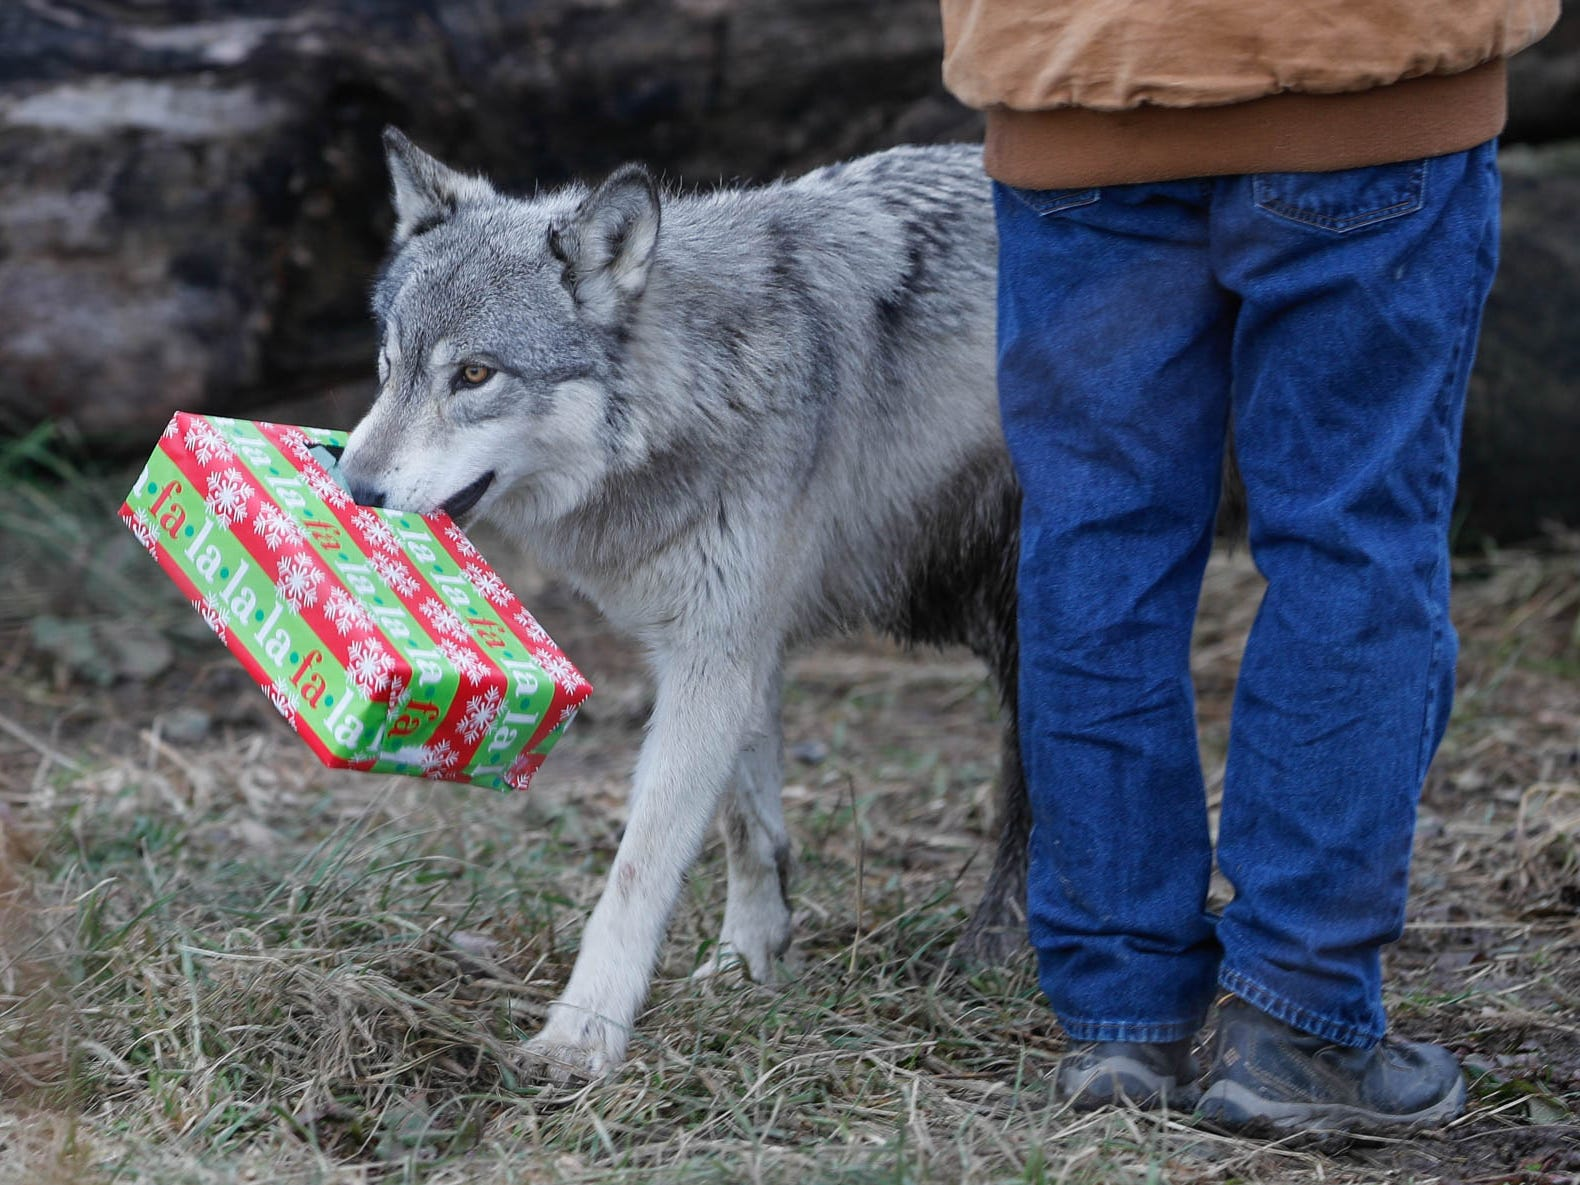 A wolf picks up a present filled with treats during Santa's visit to Wolf Park in Battle Ground Indiana on Saturday, Dec. 15, 2018. Guest's were invited to enter the wolf enclosure before the wolves were released to leave delicious gifts filled with treats and decorate a Christmas tree with snacks.